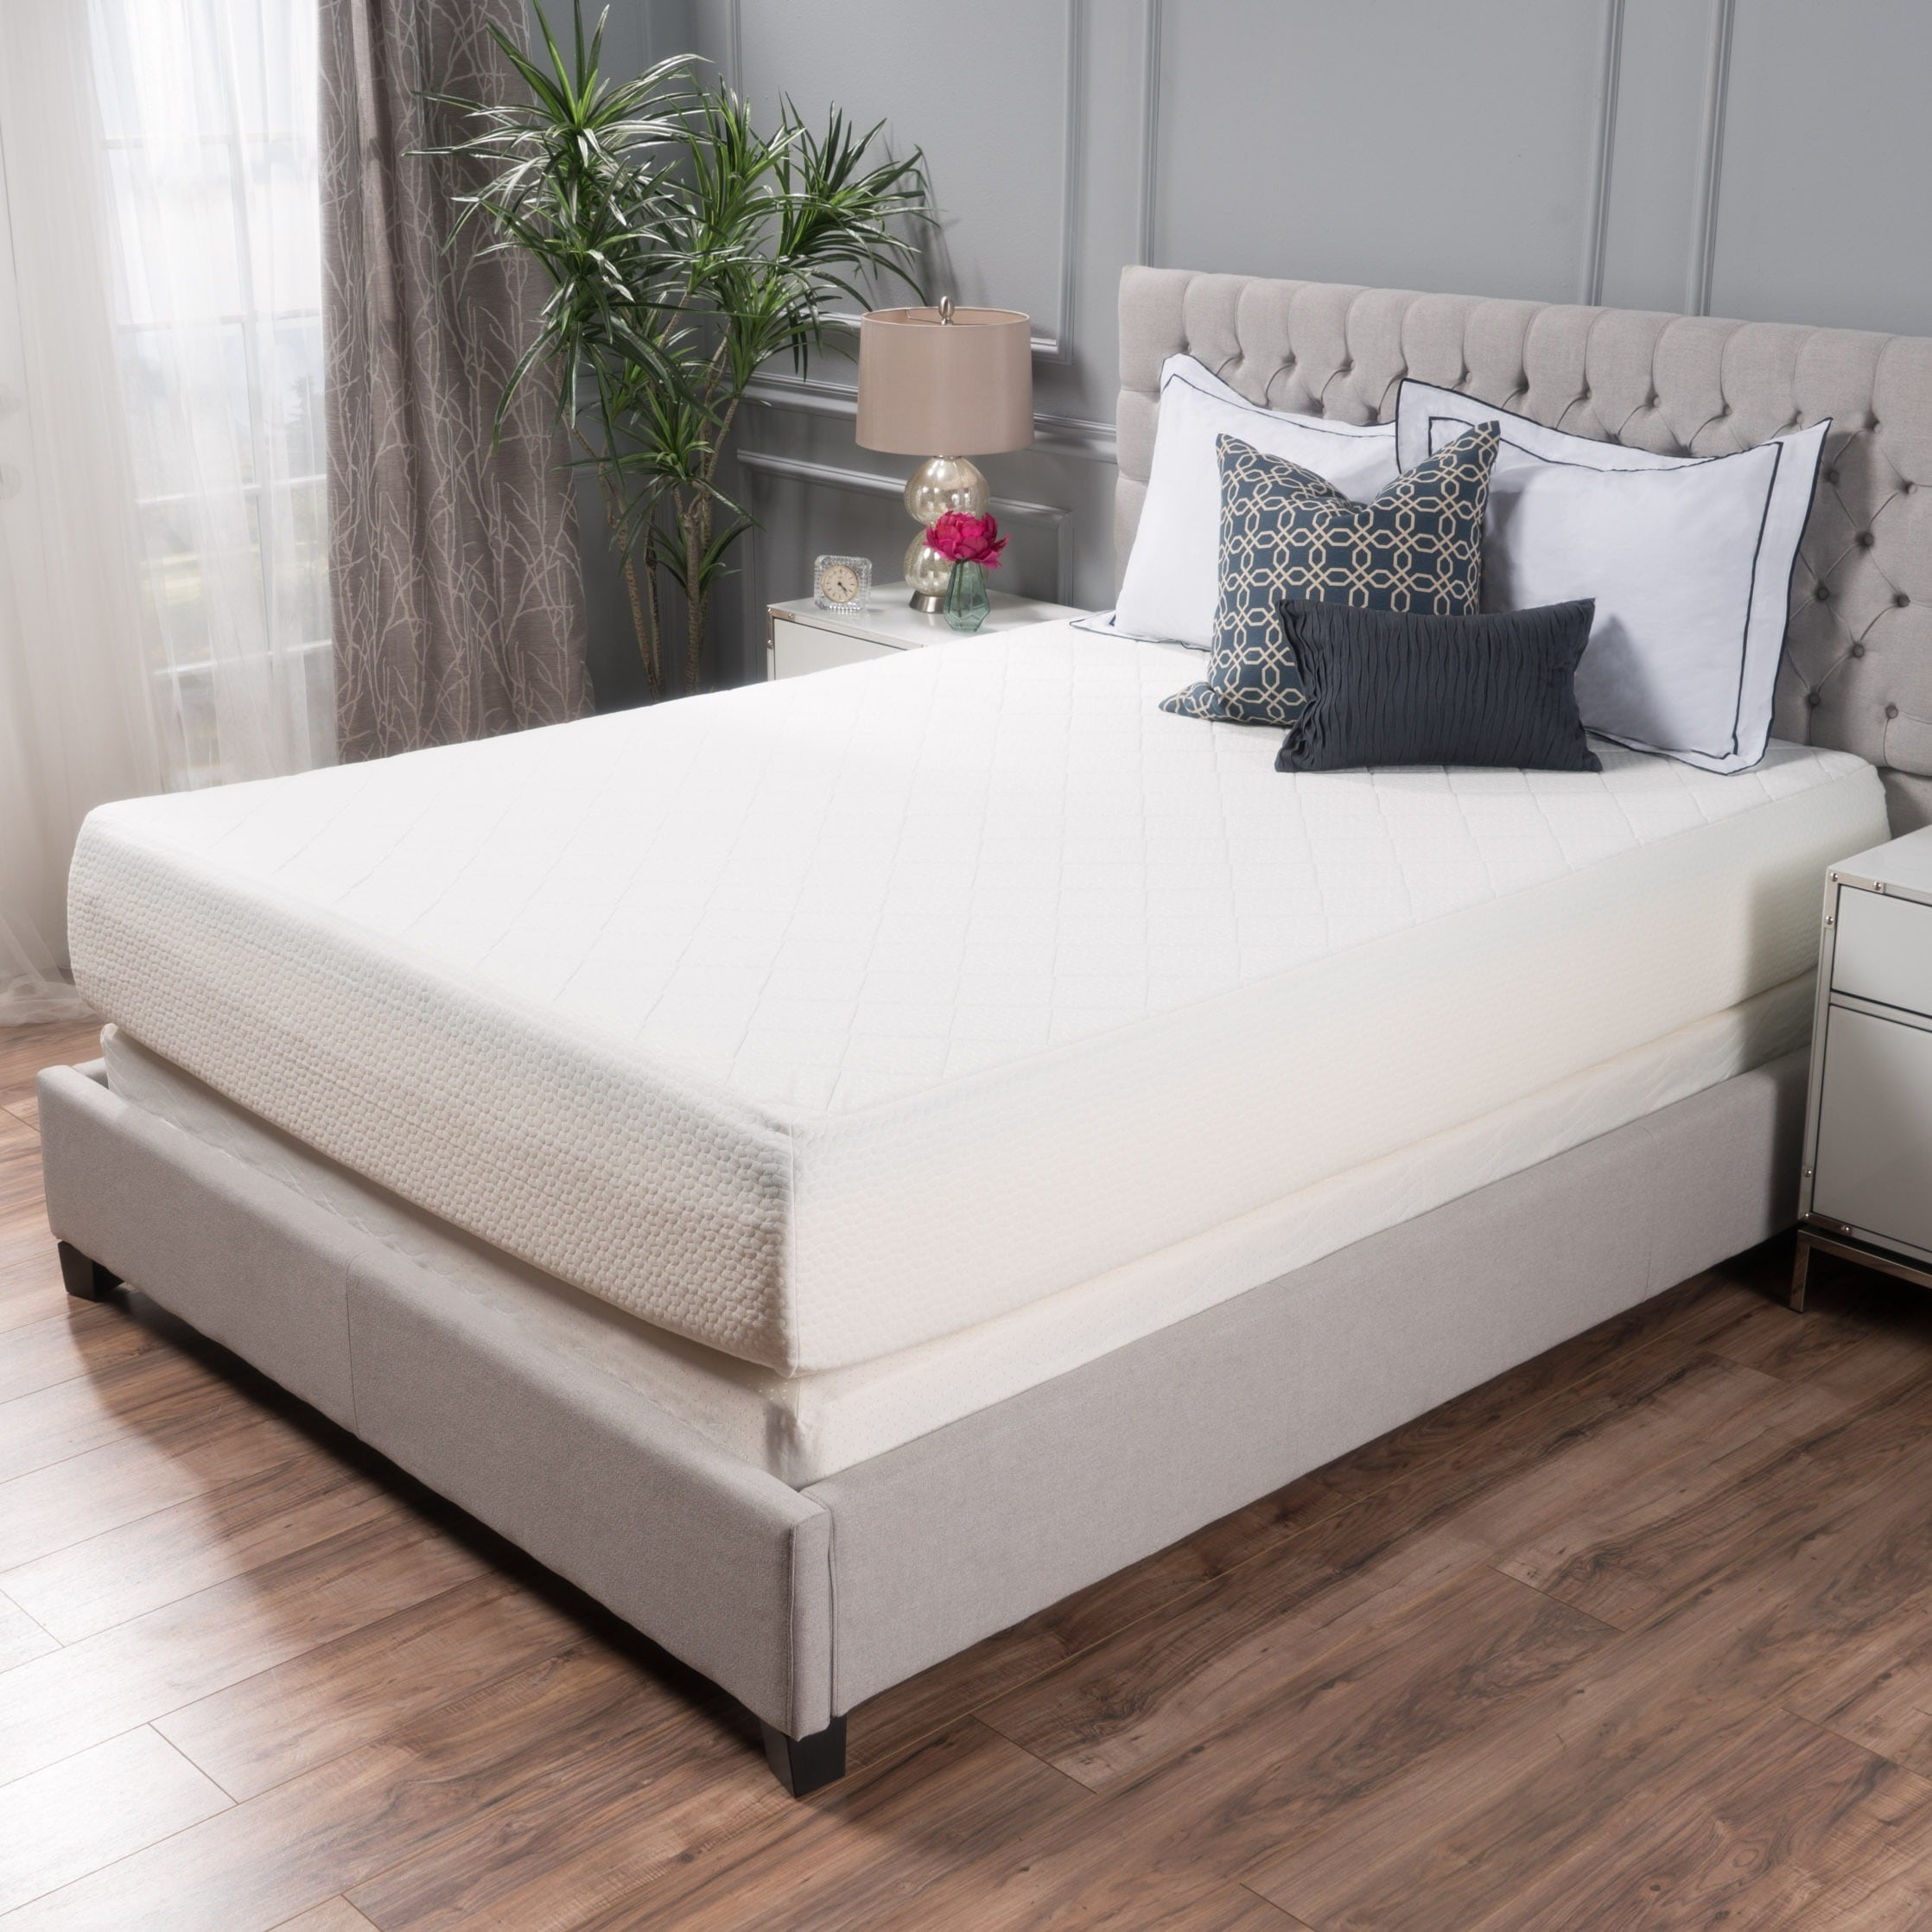 queen lovely of best size serta graphics today mattress design set overstock shipping box spring home cromwell firm boxspring and free